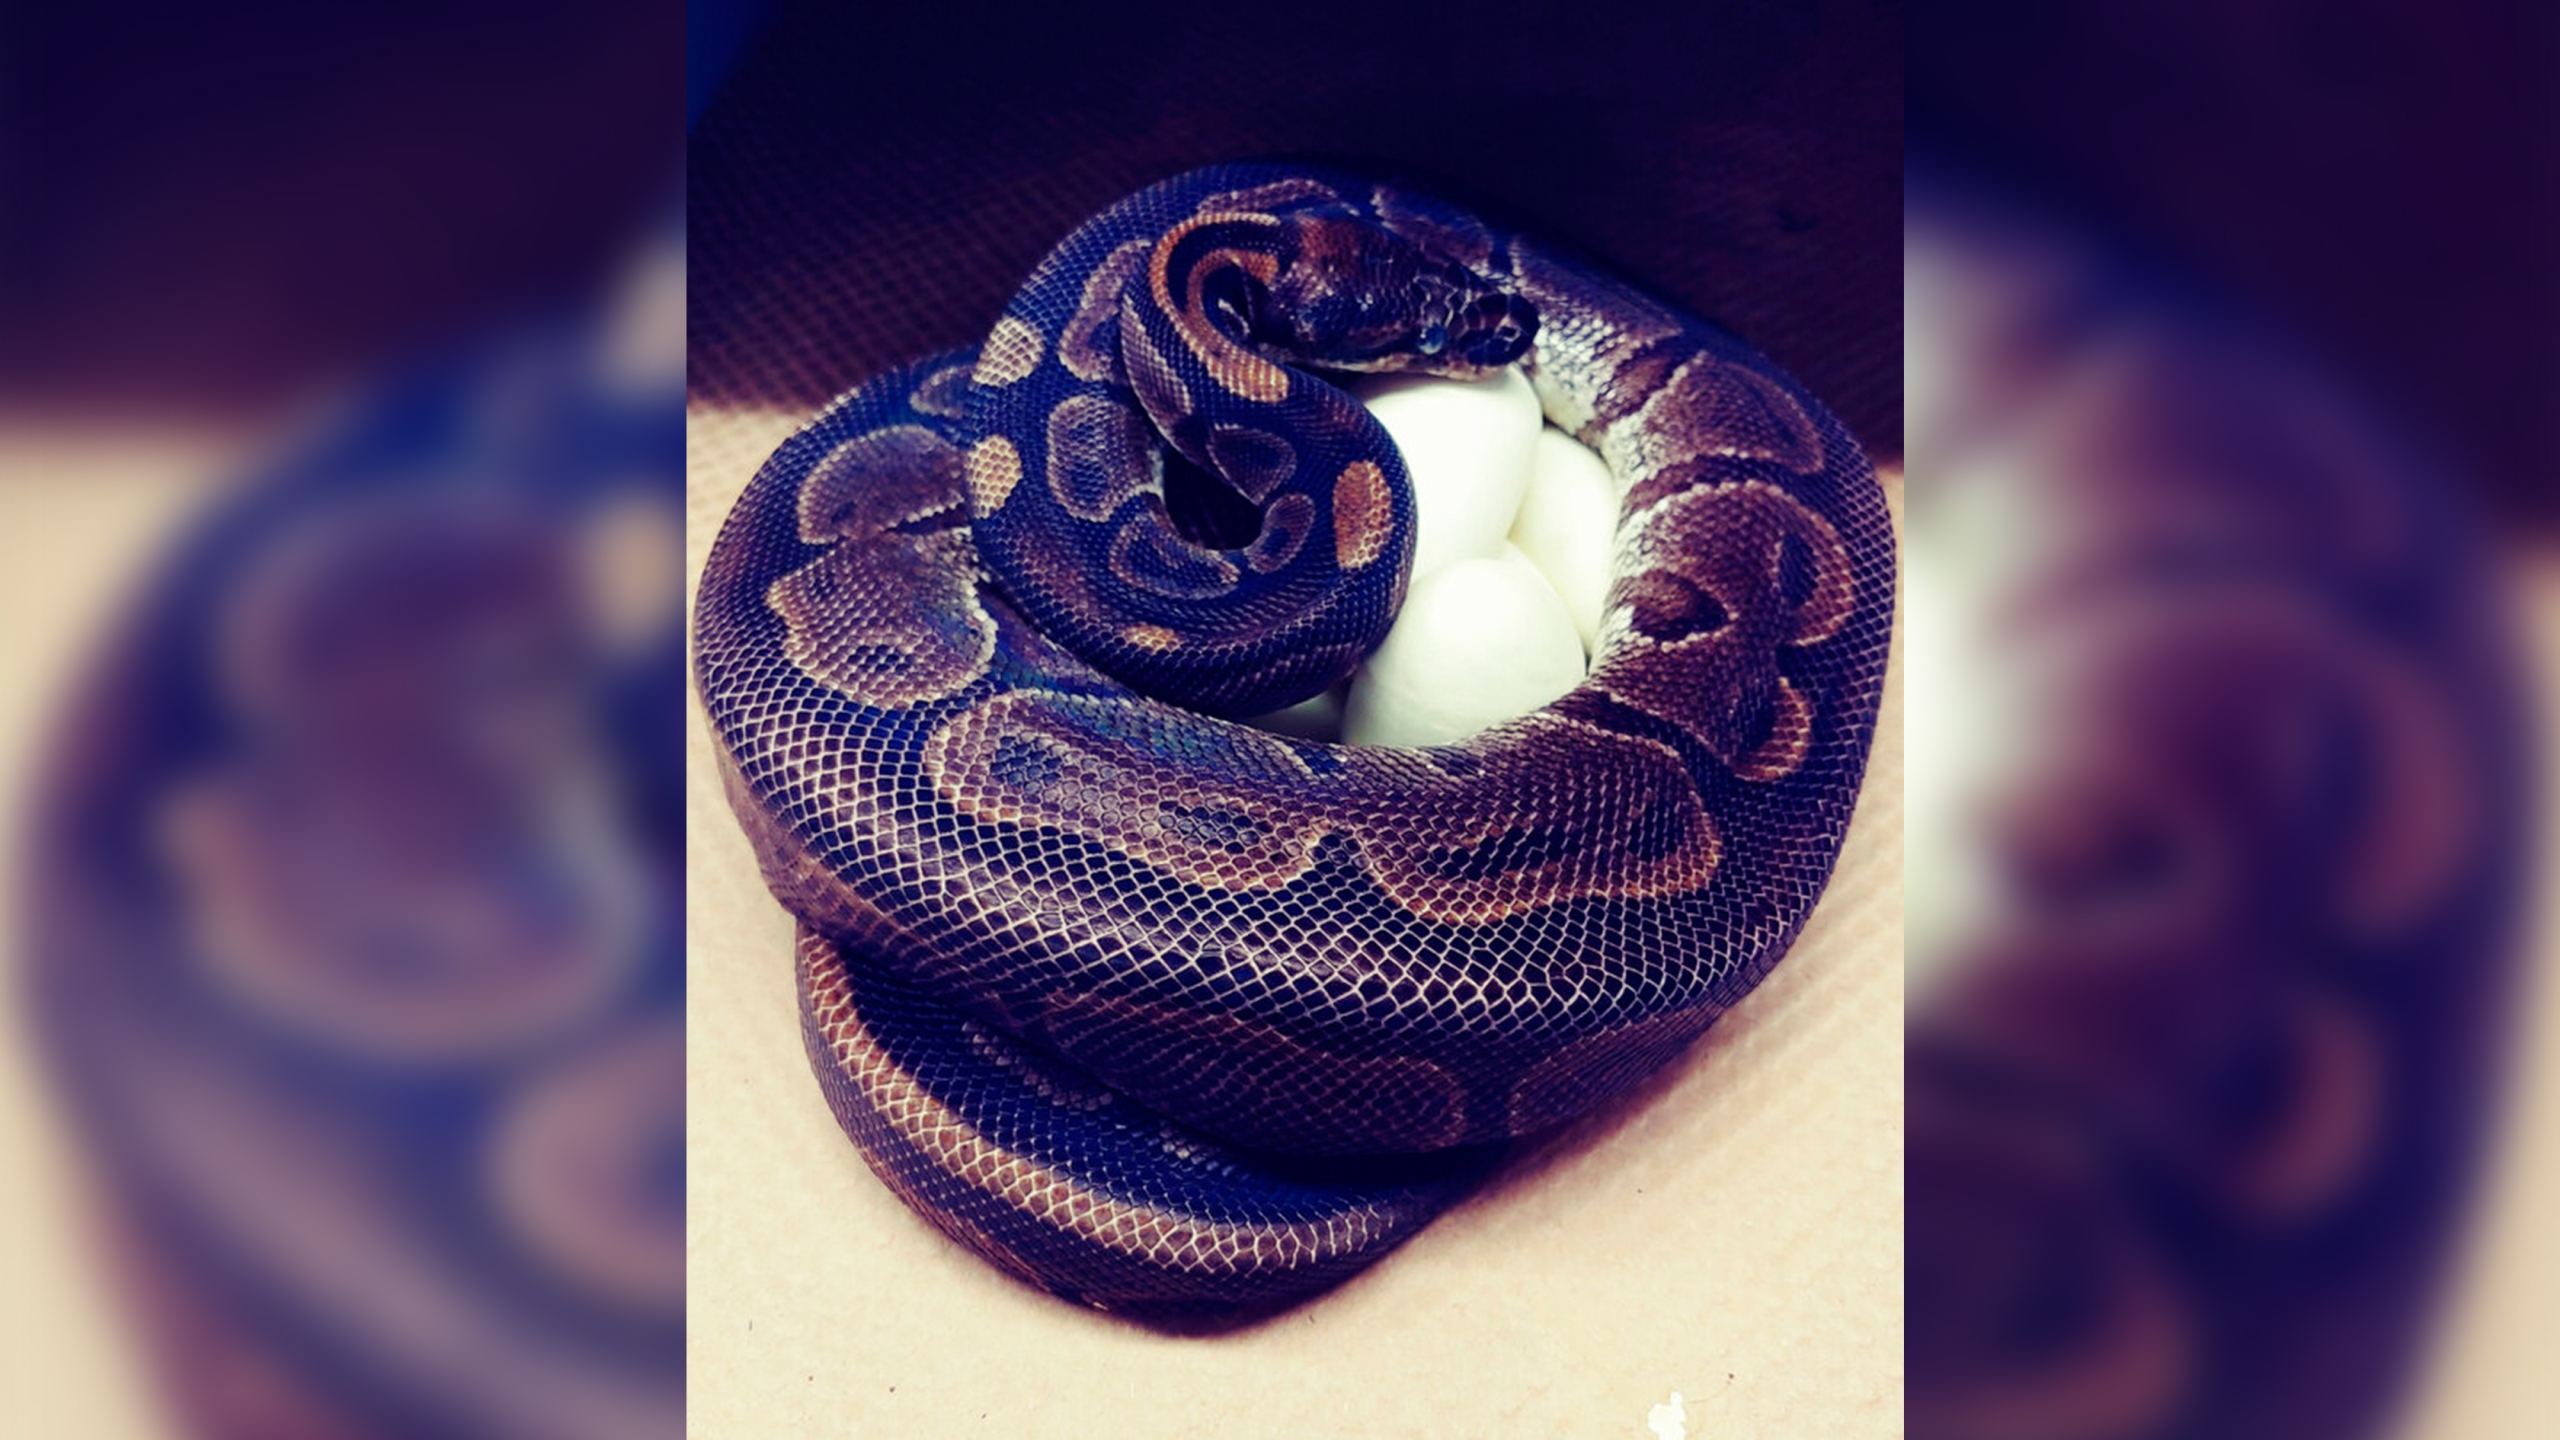 St Louis Zoo Says Python Laid 7 Eggs Without Male Help Wdtn Com